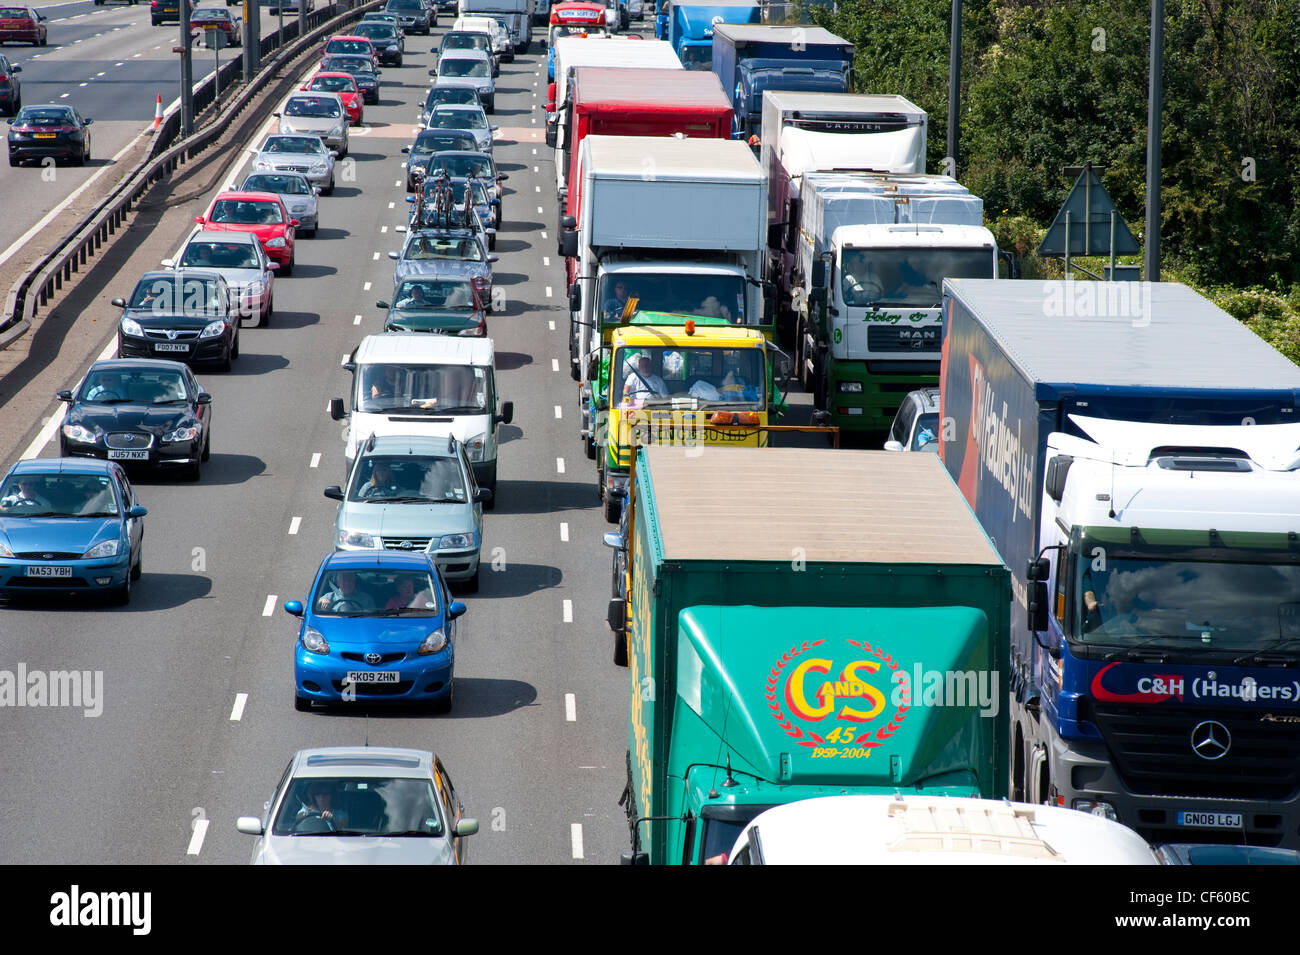 Traffic queues on the approach to the Dartford River Crossing from Kent into Essex. - Stock Image